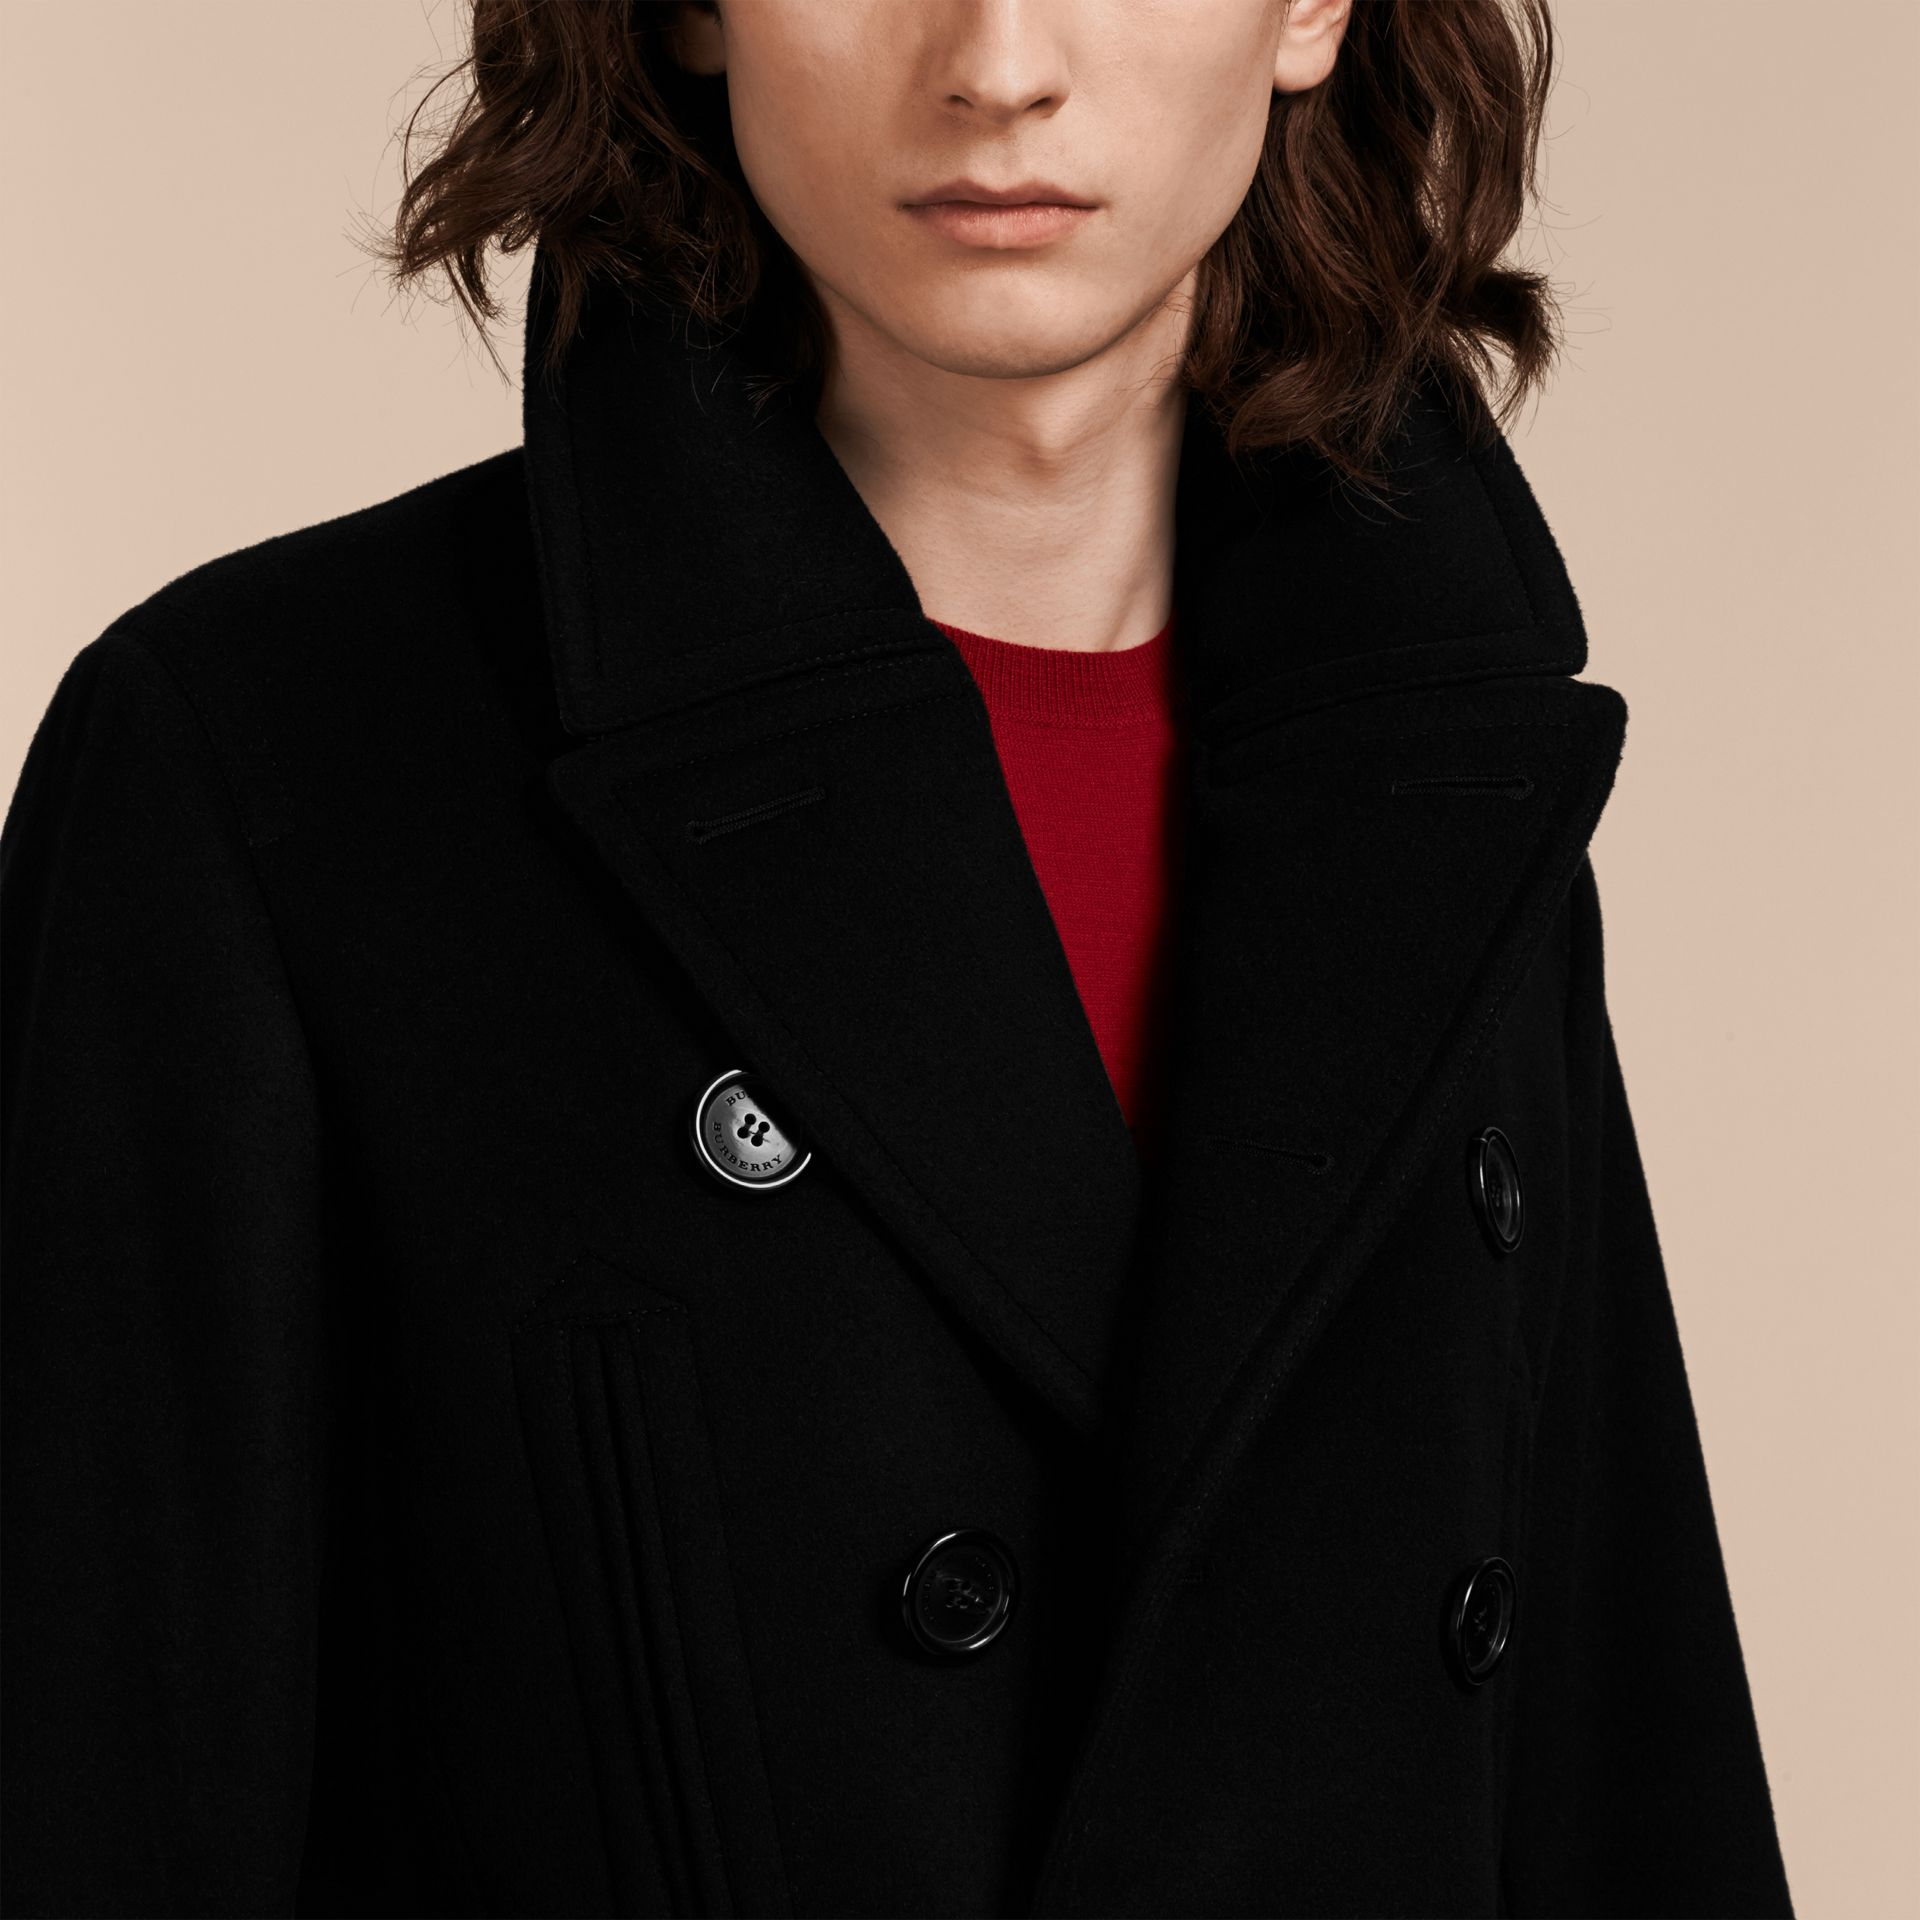 Black Wool Cashmere Pea Coat Black - gallery image 6